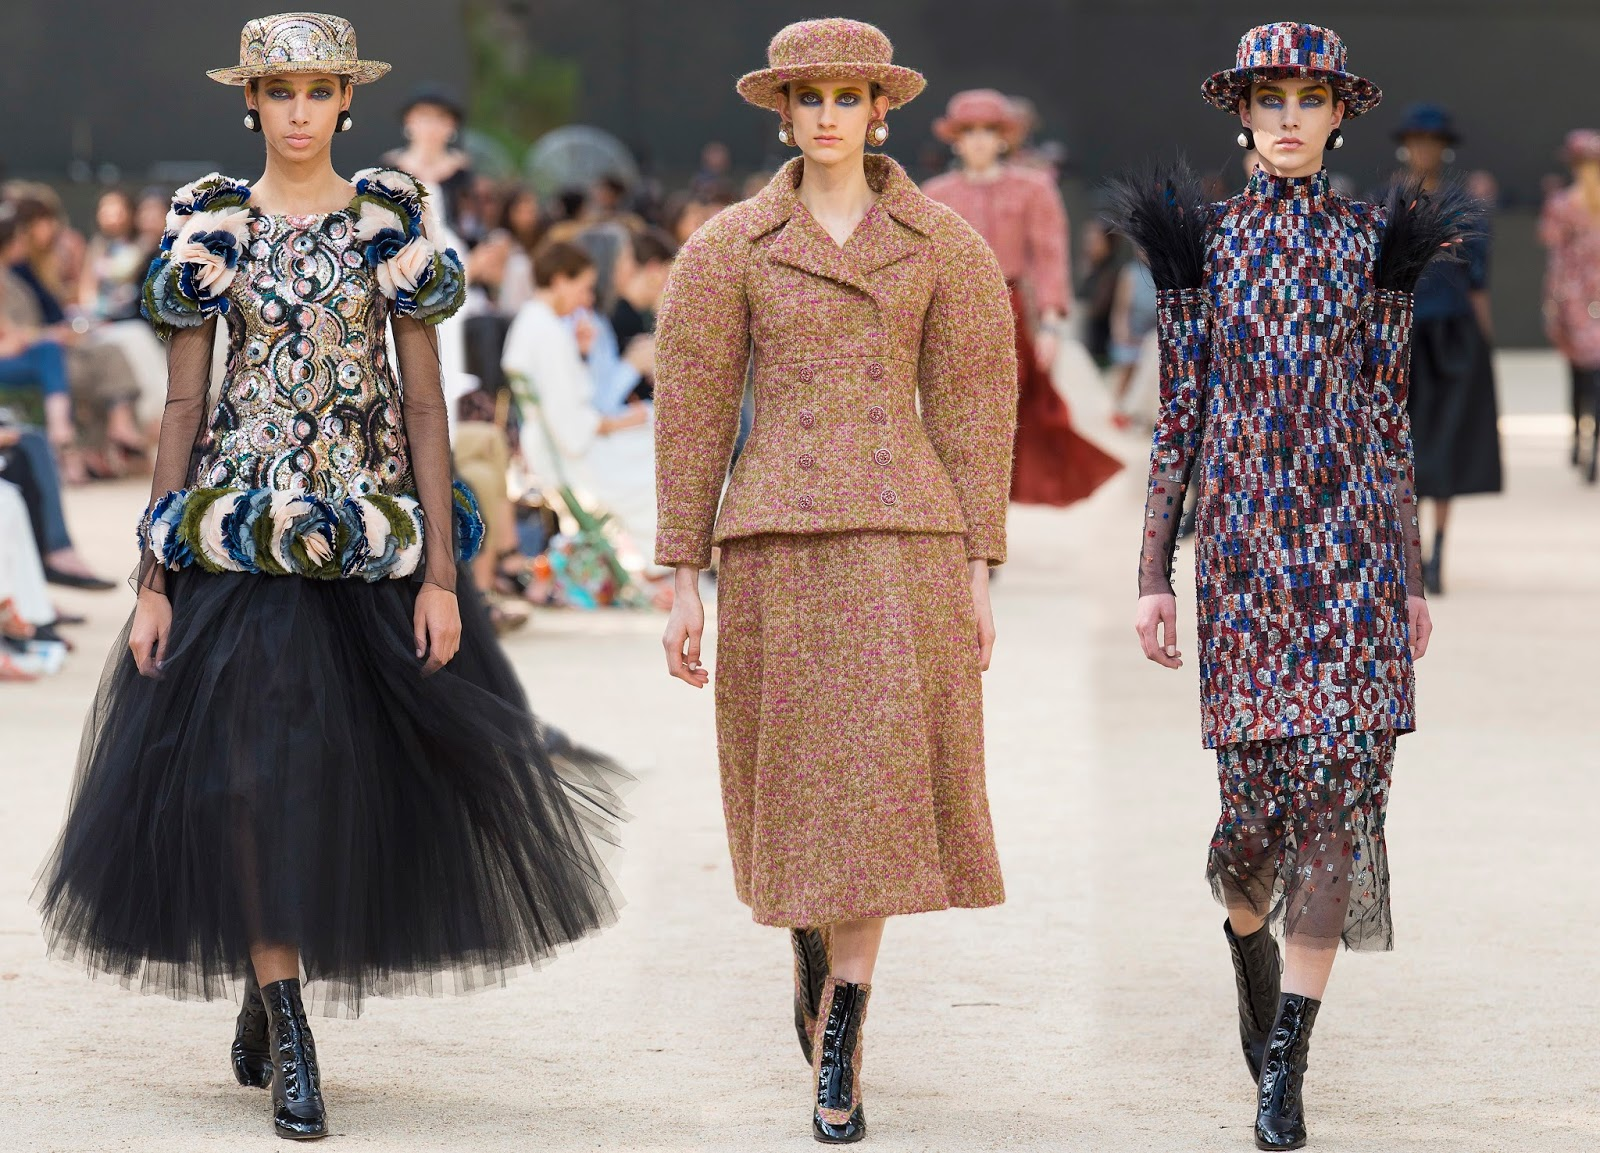 2019 year look- Haute chanel couture fall runway